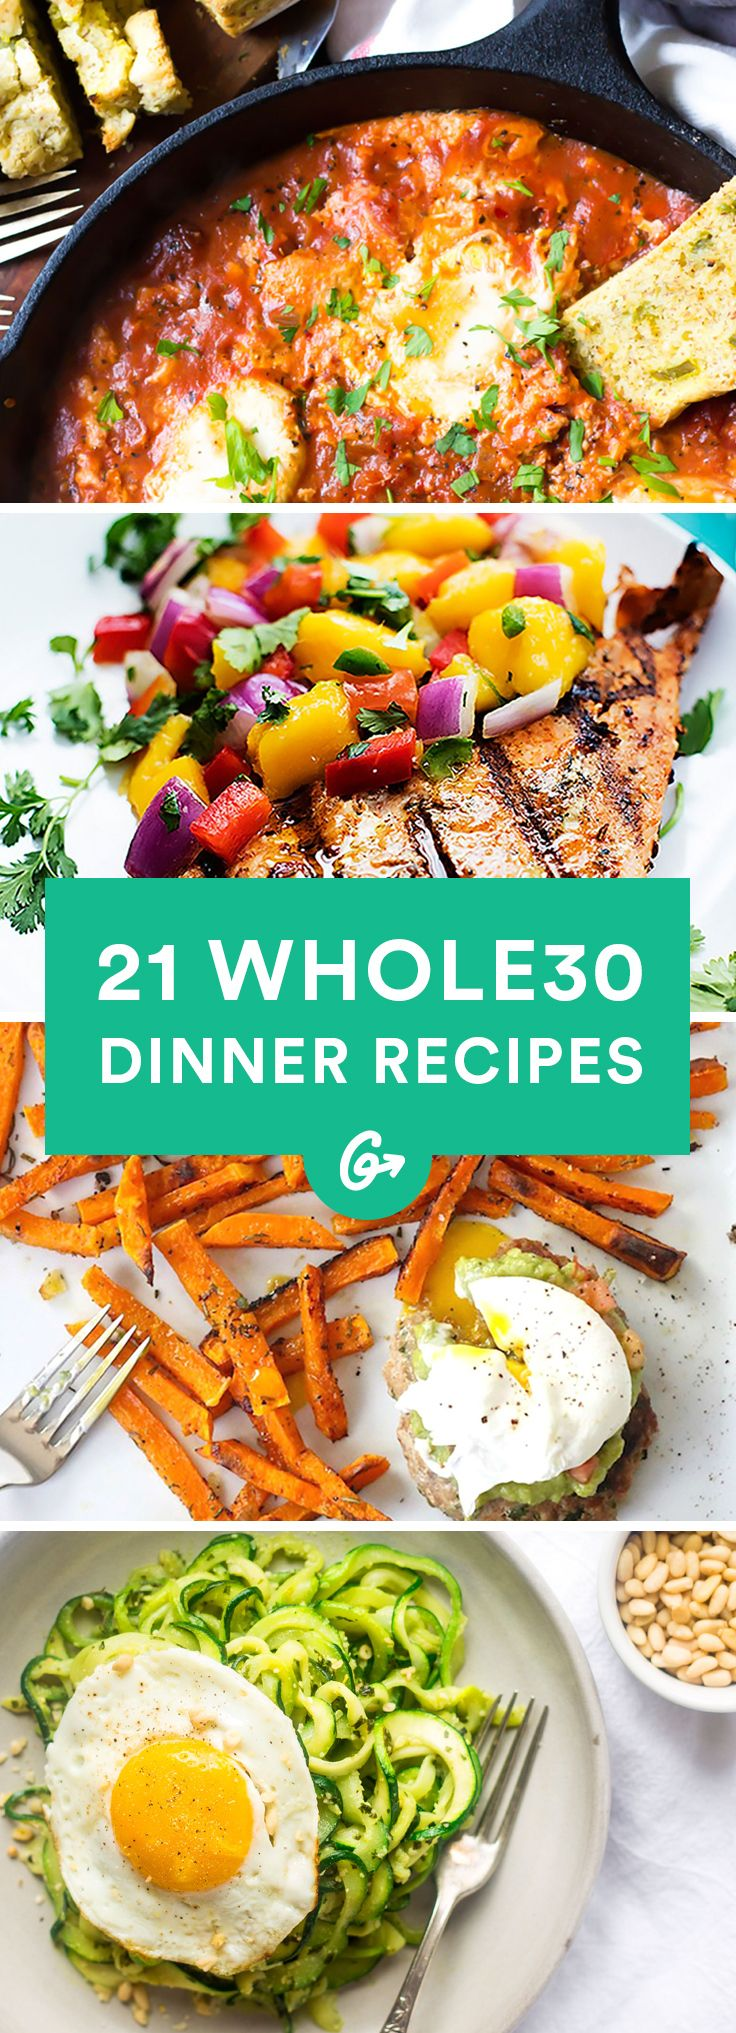 21 Easy and Delicious Whole30 Dinner Recipes #whole30 #recipes http://greatist.com/eat/whole30-dinner-recipes